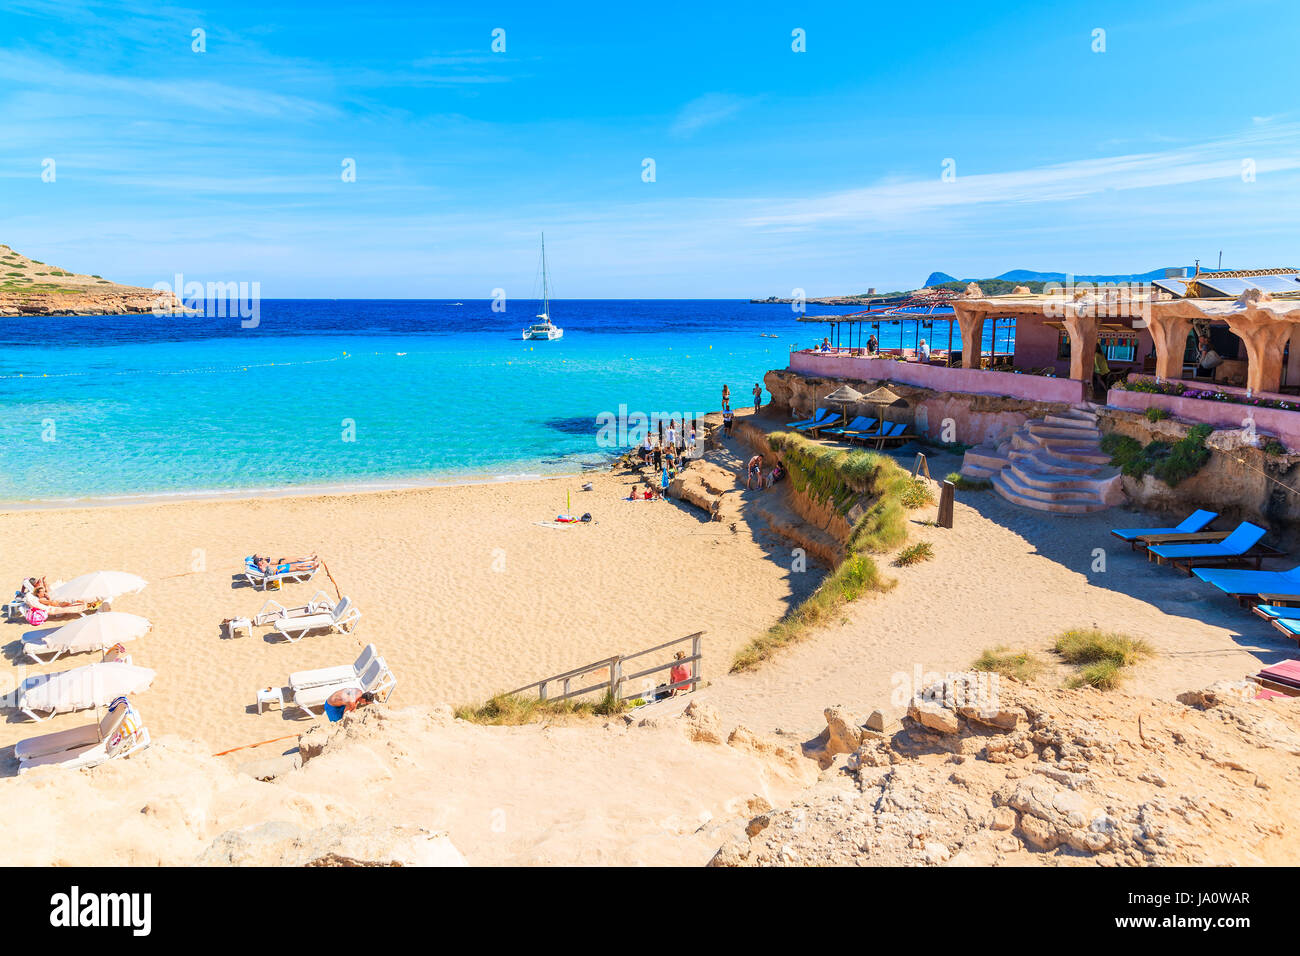 CALA COMTE BEACH, IBIZA ISLAND - MAY 17, 2017: view of sandy Cala Comte beach and restaurant building on shore, - Stock Image